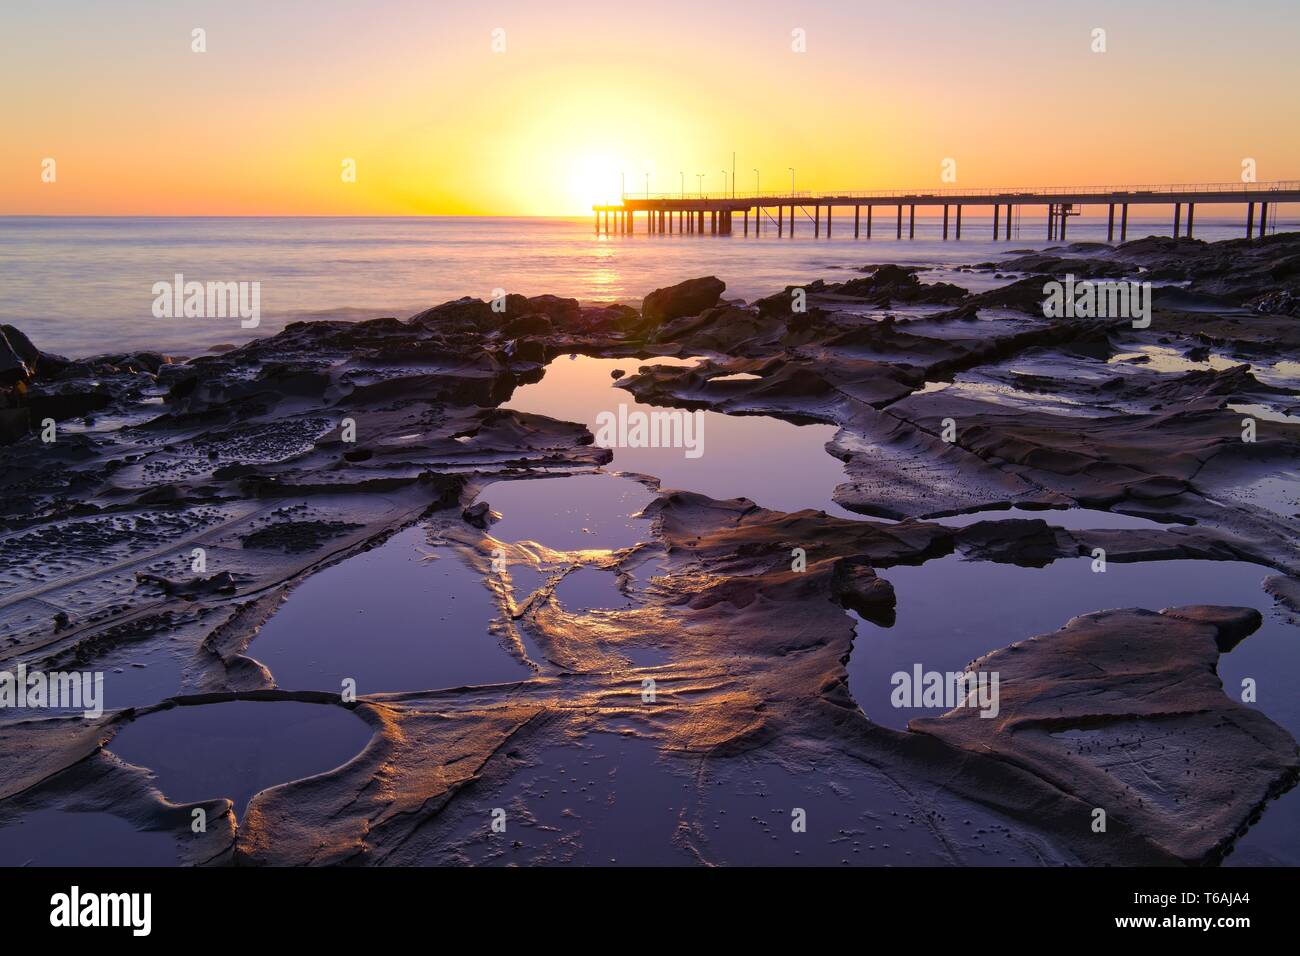 Looking over rocks and pools of water to Lorne Pier at sunrise - Stock Image